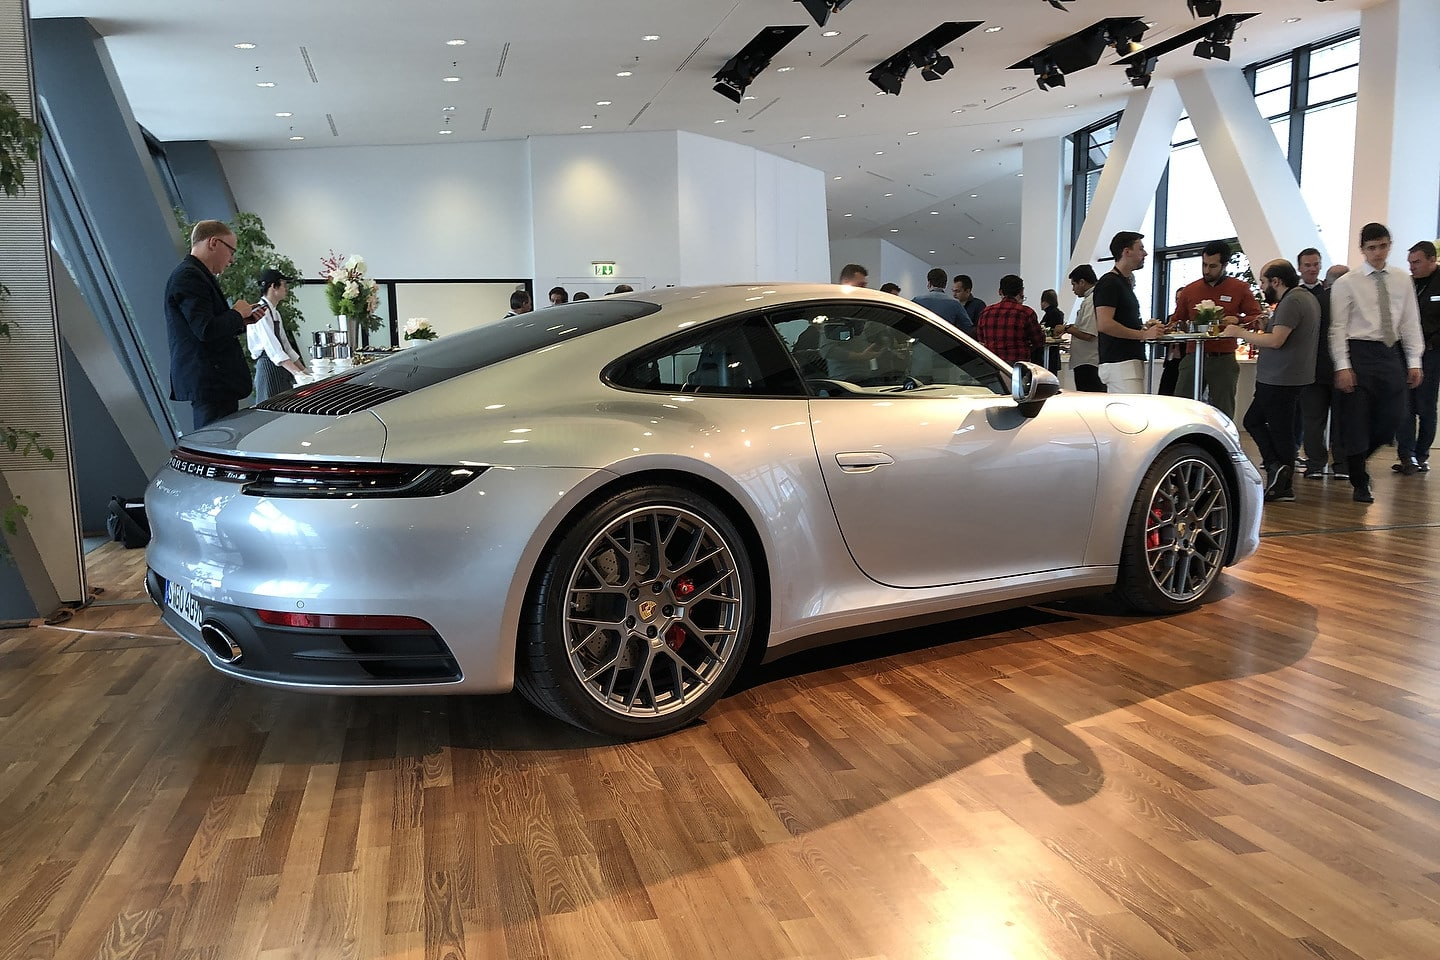 2020 porsche 911 deep dive what s really new about the 992 motor illustrated. Black Bedroom Furniture Sets. Home Design Ideas